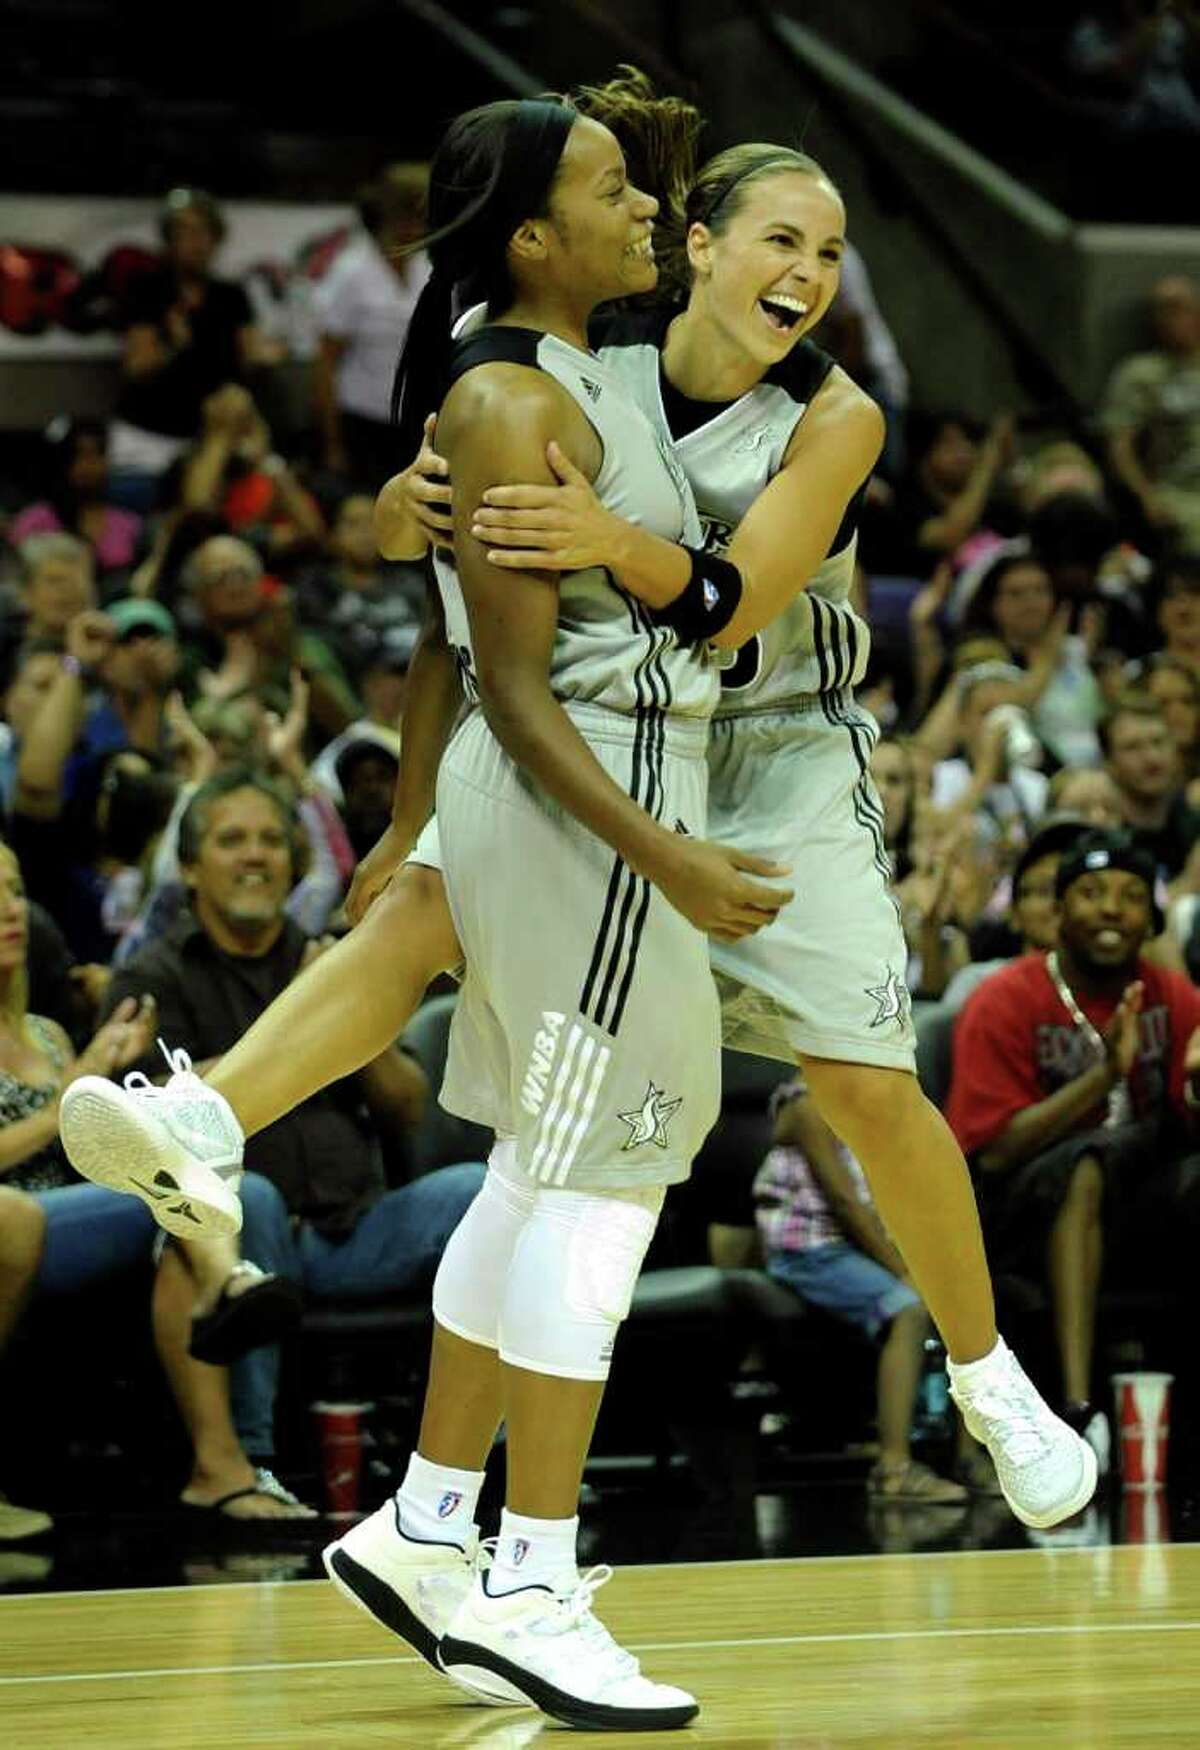 Guard Becky Hammon (right), rejoicing after a basket by Jia Perkins on Saturday against Seattle, says the Silver Stars need to take care of business to make the playoffs.